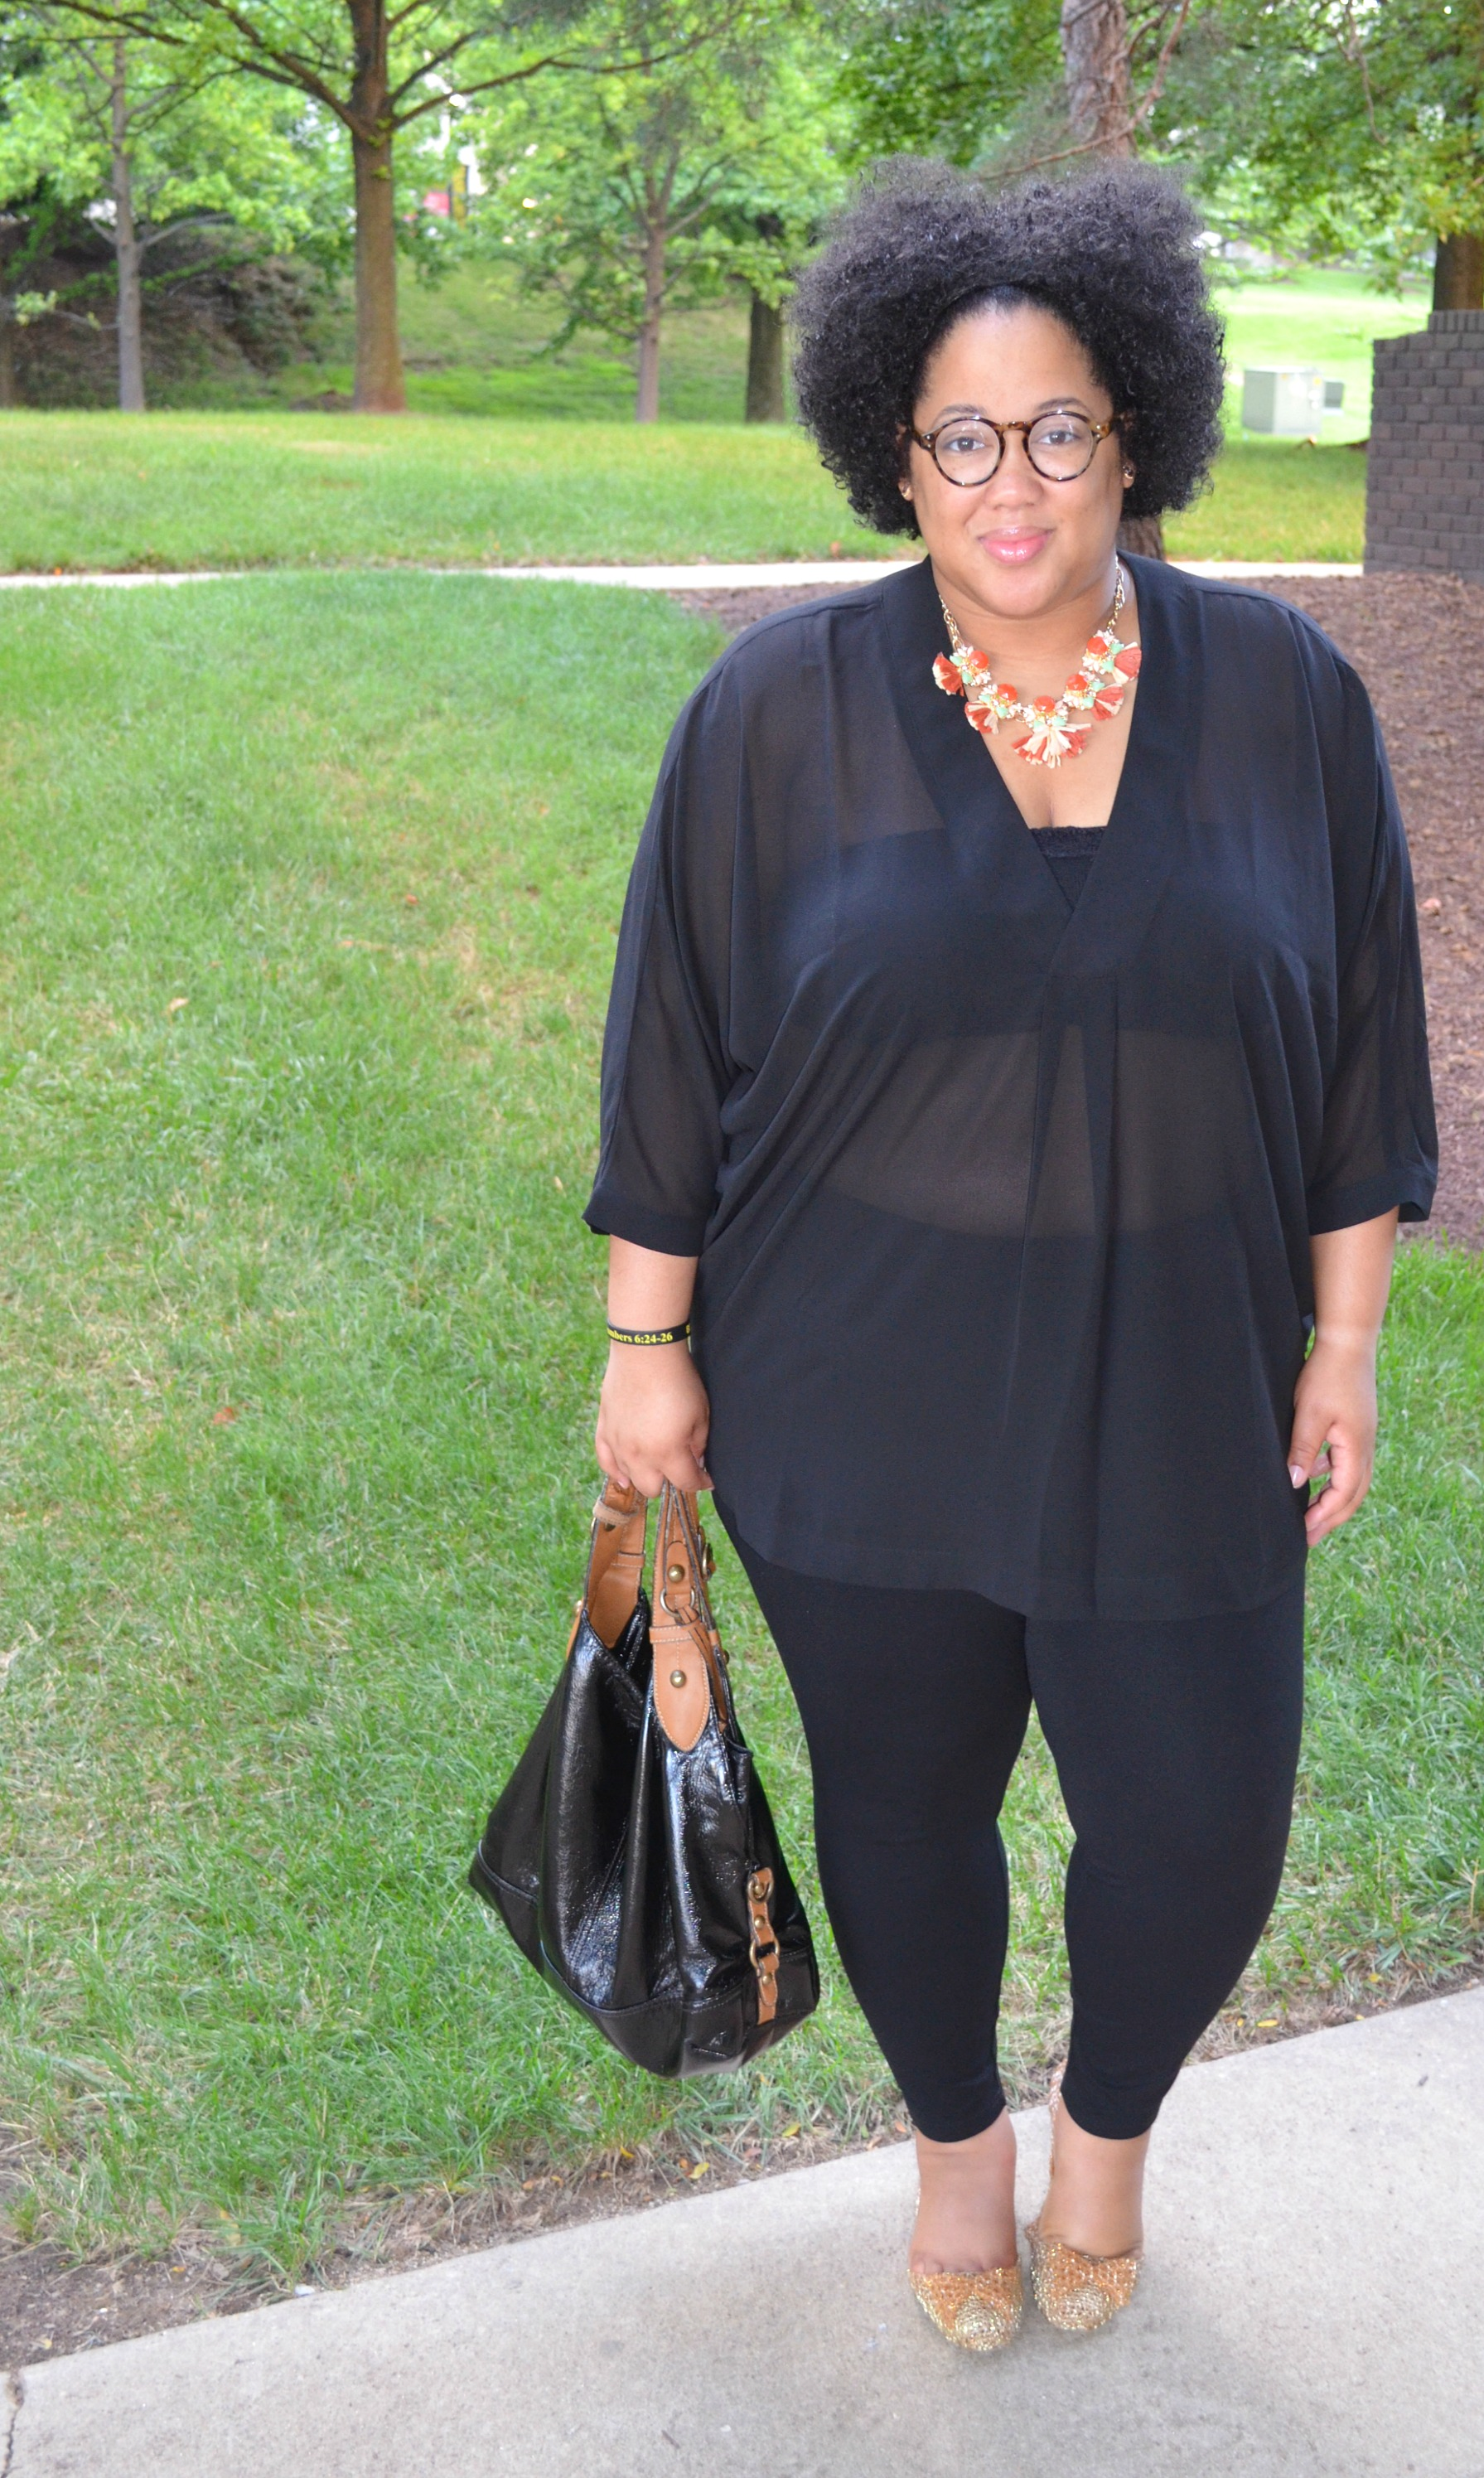 Sheer Blouse and Statement Necklace